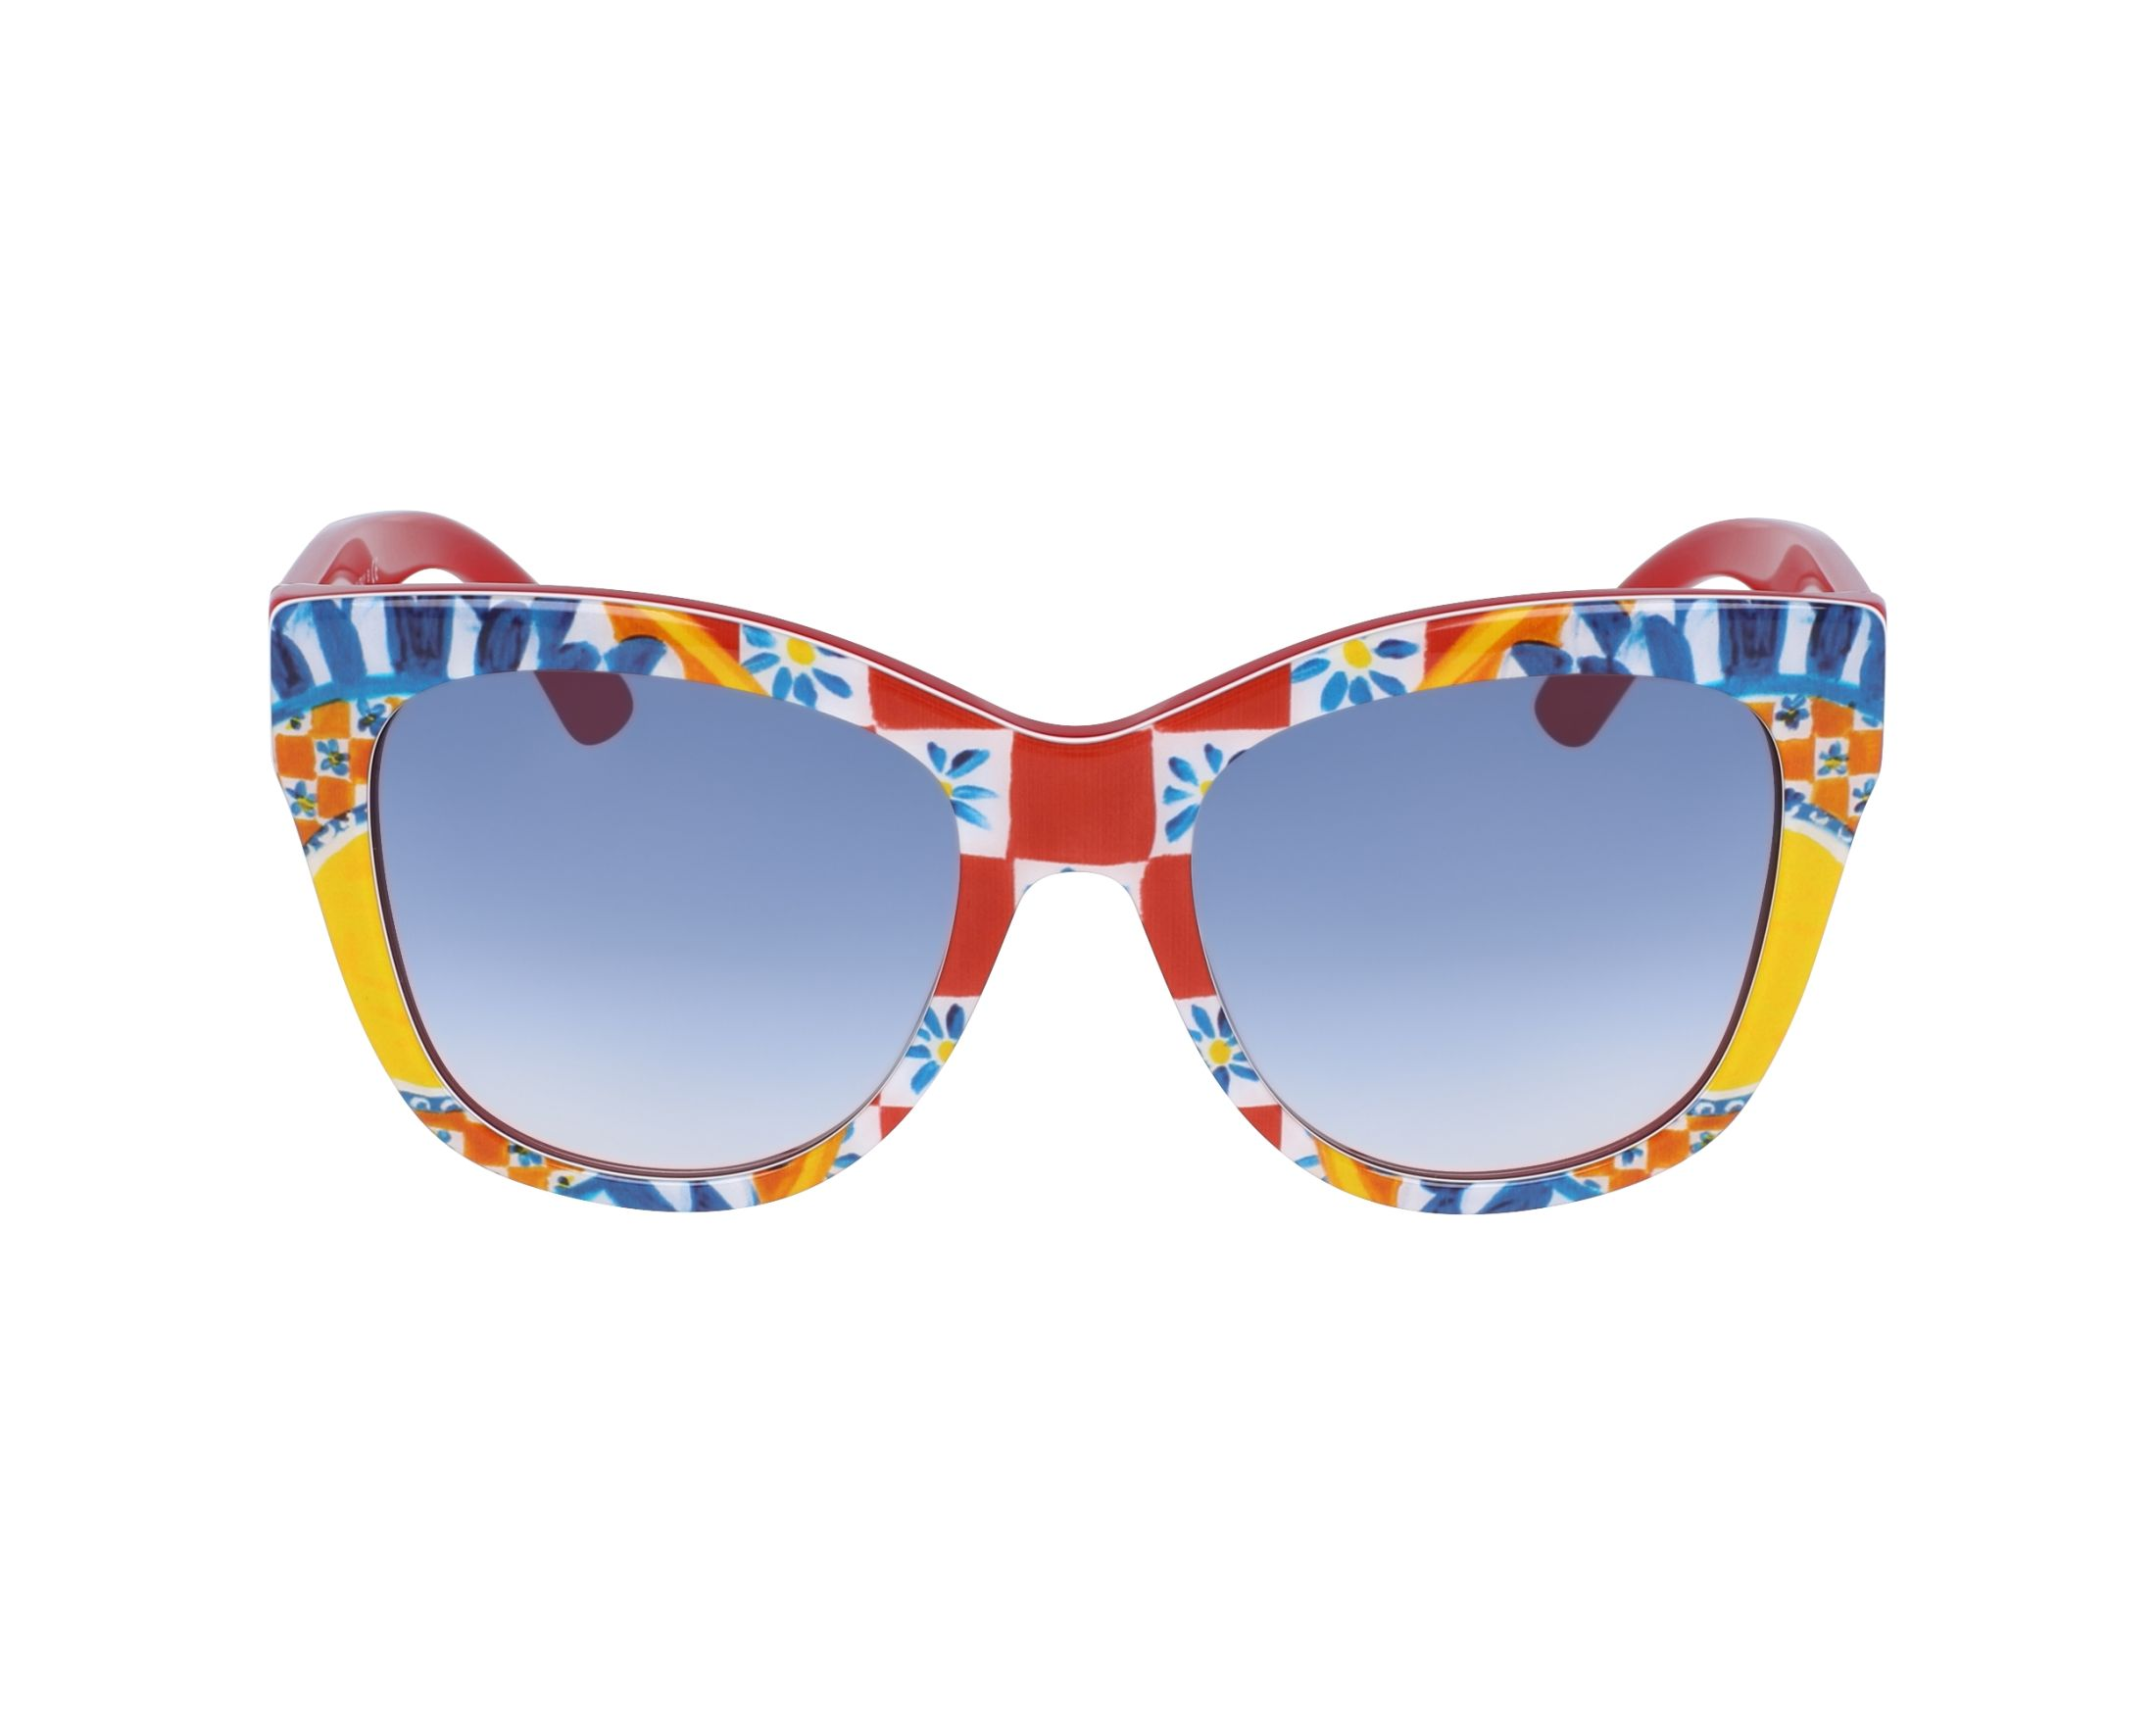 ded63350f9 Dolce And Gabbana Sunglasses Dg4270 - Bitterroot Public Library